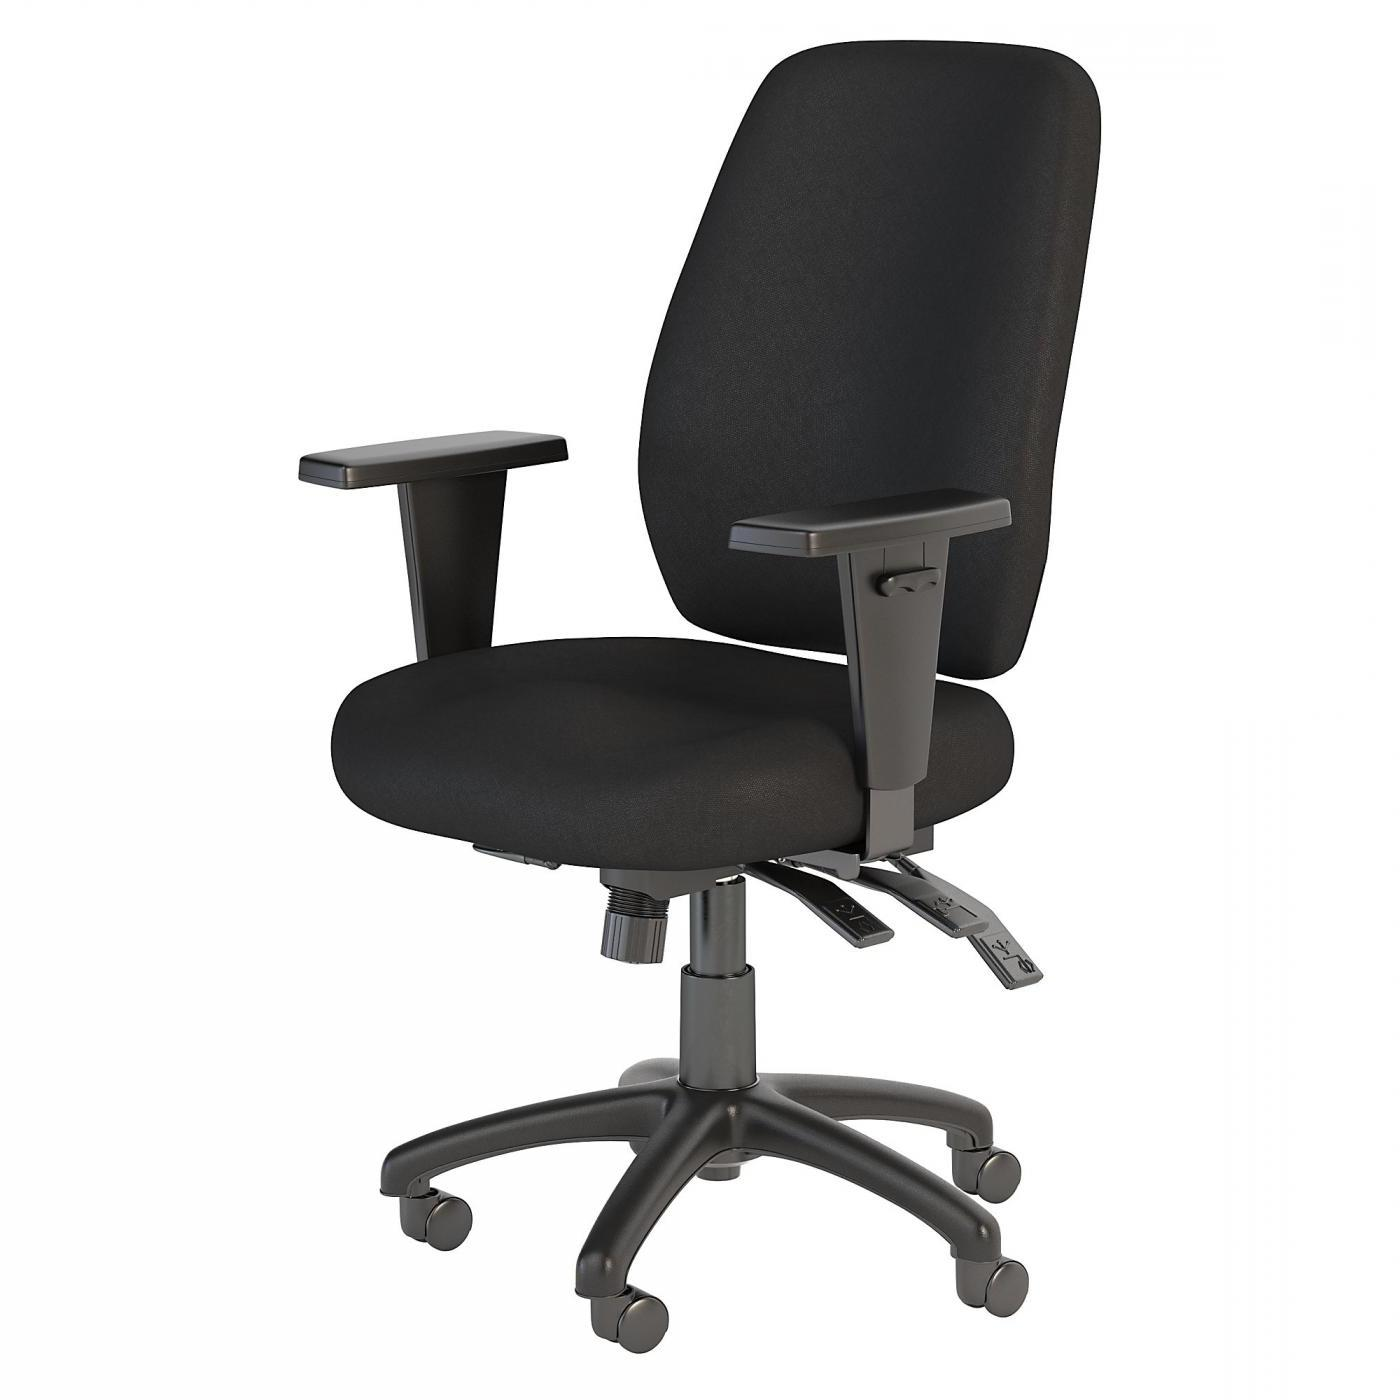 <font color=#c60><b>BUSH BUSINESS FURNITURE PROSPER HIGH BACK MULTIFUNCTION OFFICE CHAIR. FREE SHIPPING</font></b> </font></b></font></b>